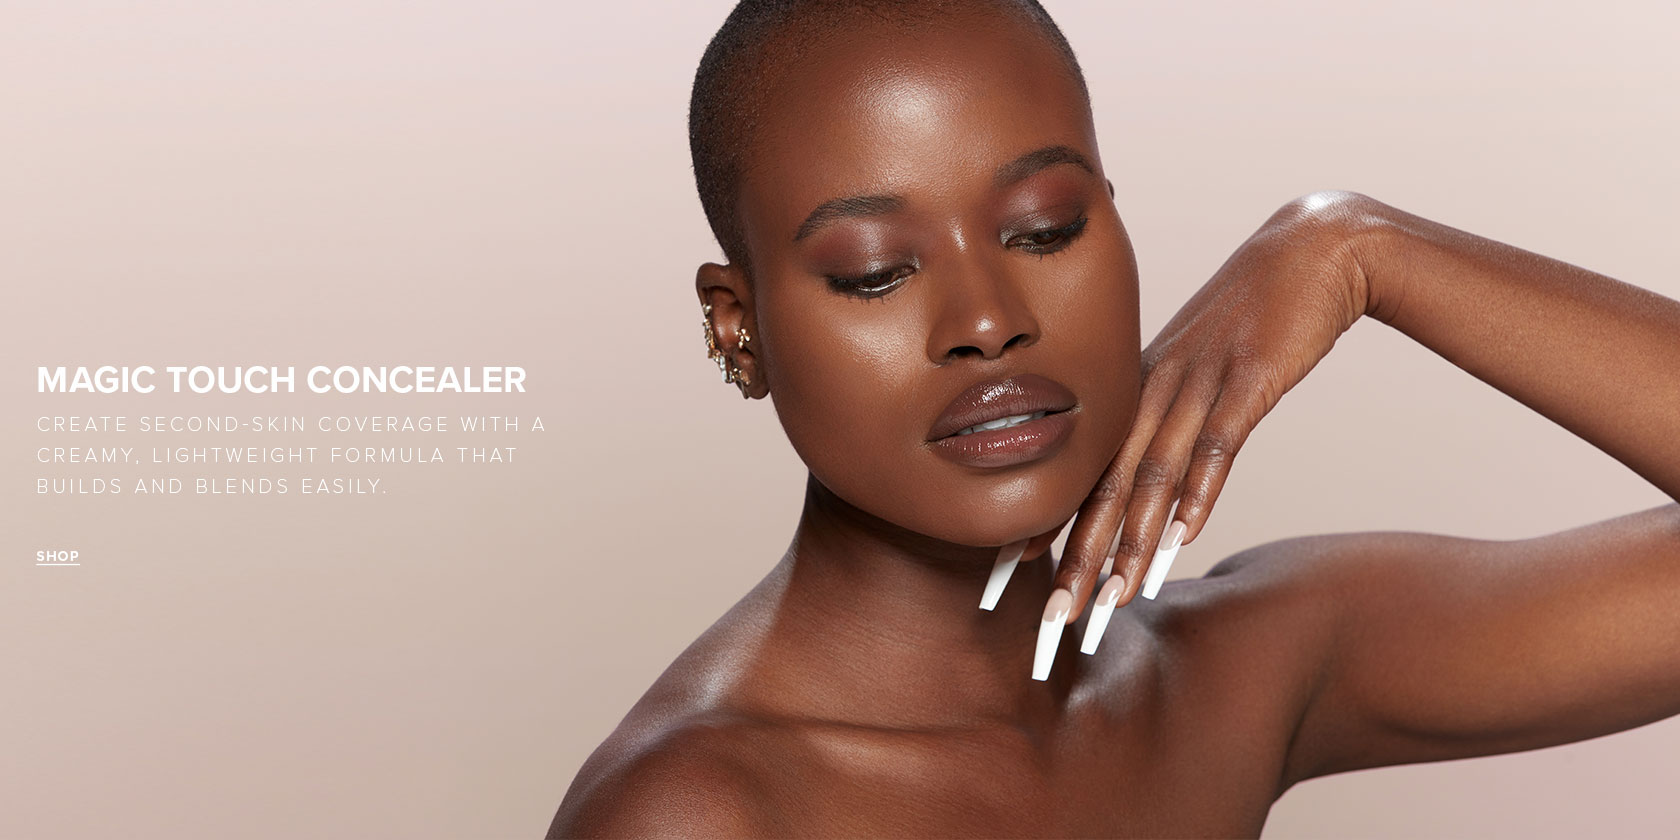 Magic Touch Concealer | Create second skin coverage with a creamy, lightweight formula that builds and blends easily